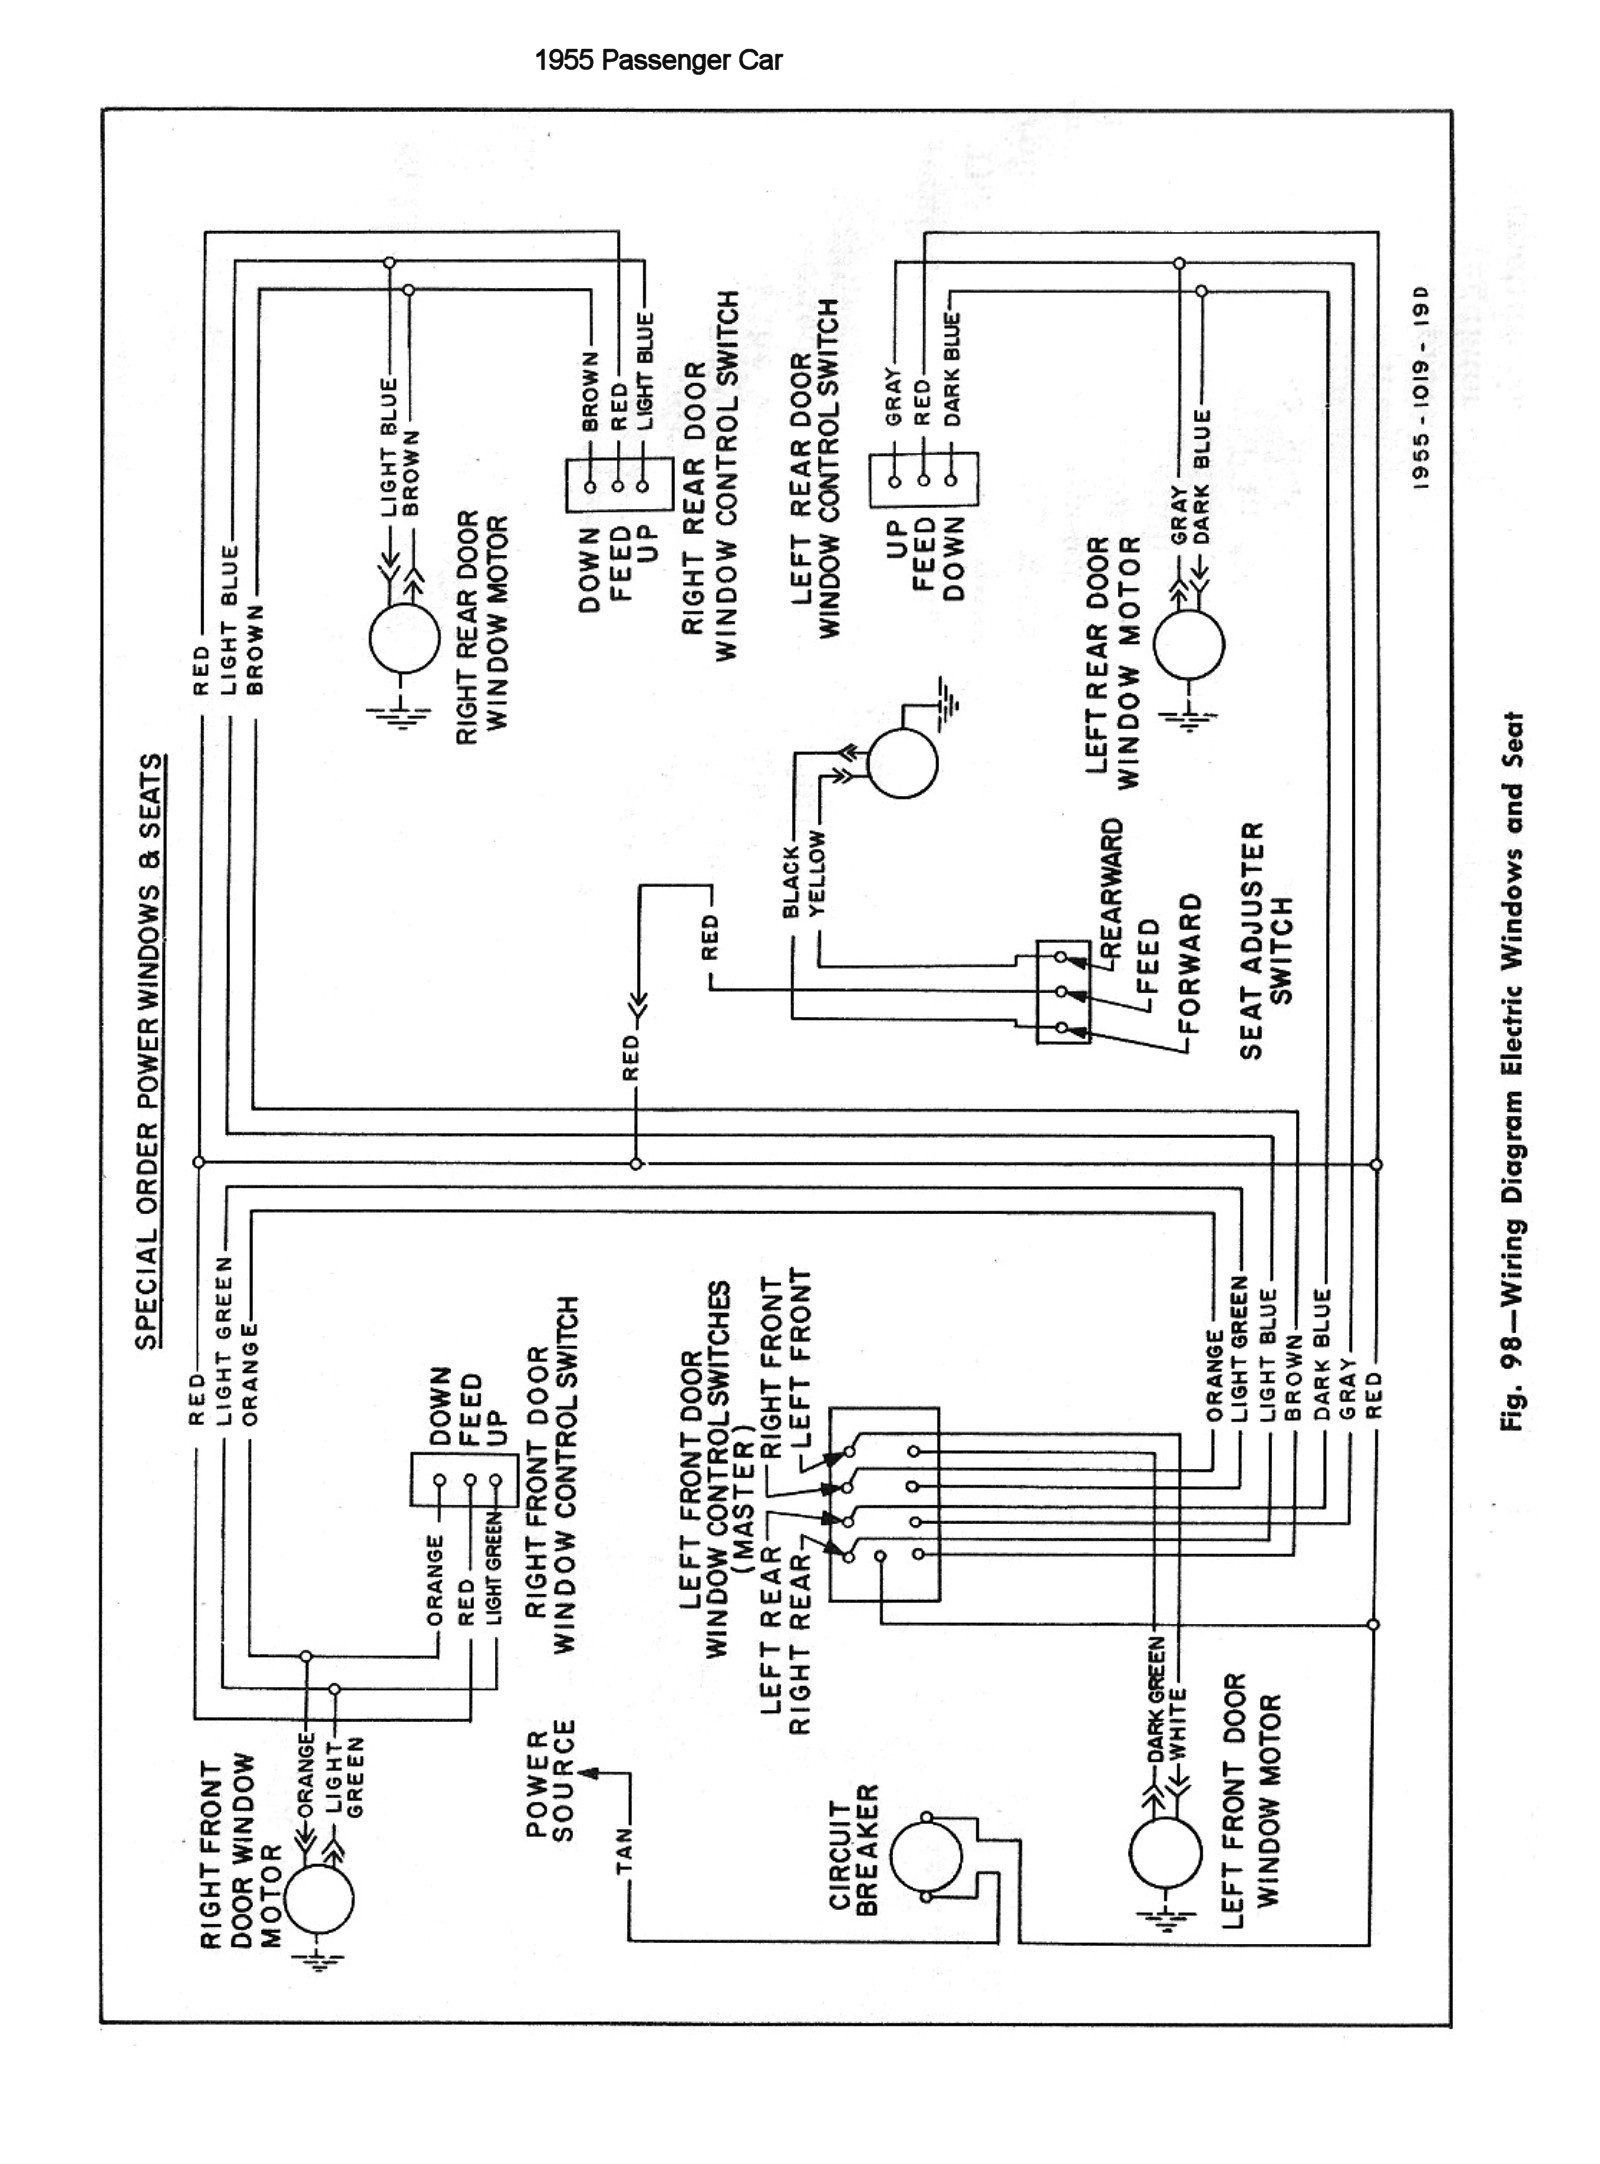 06 International 5900 Turn Signal Wiring Diagram from i0.wp.com